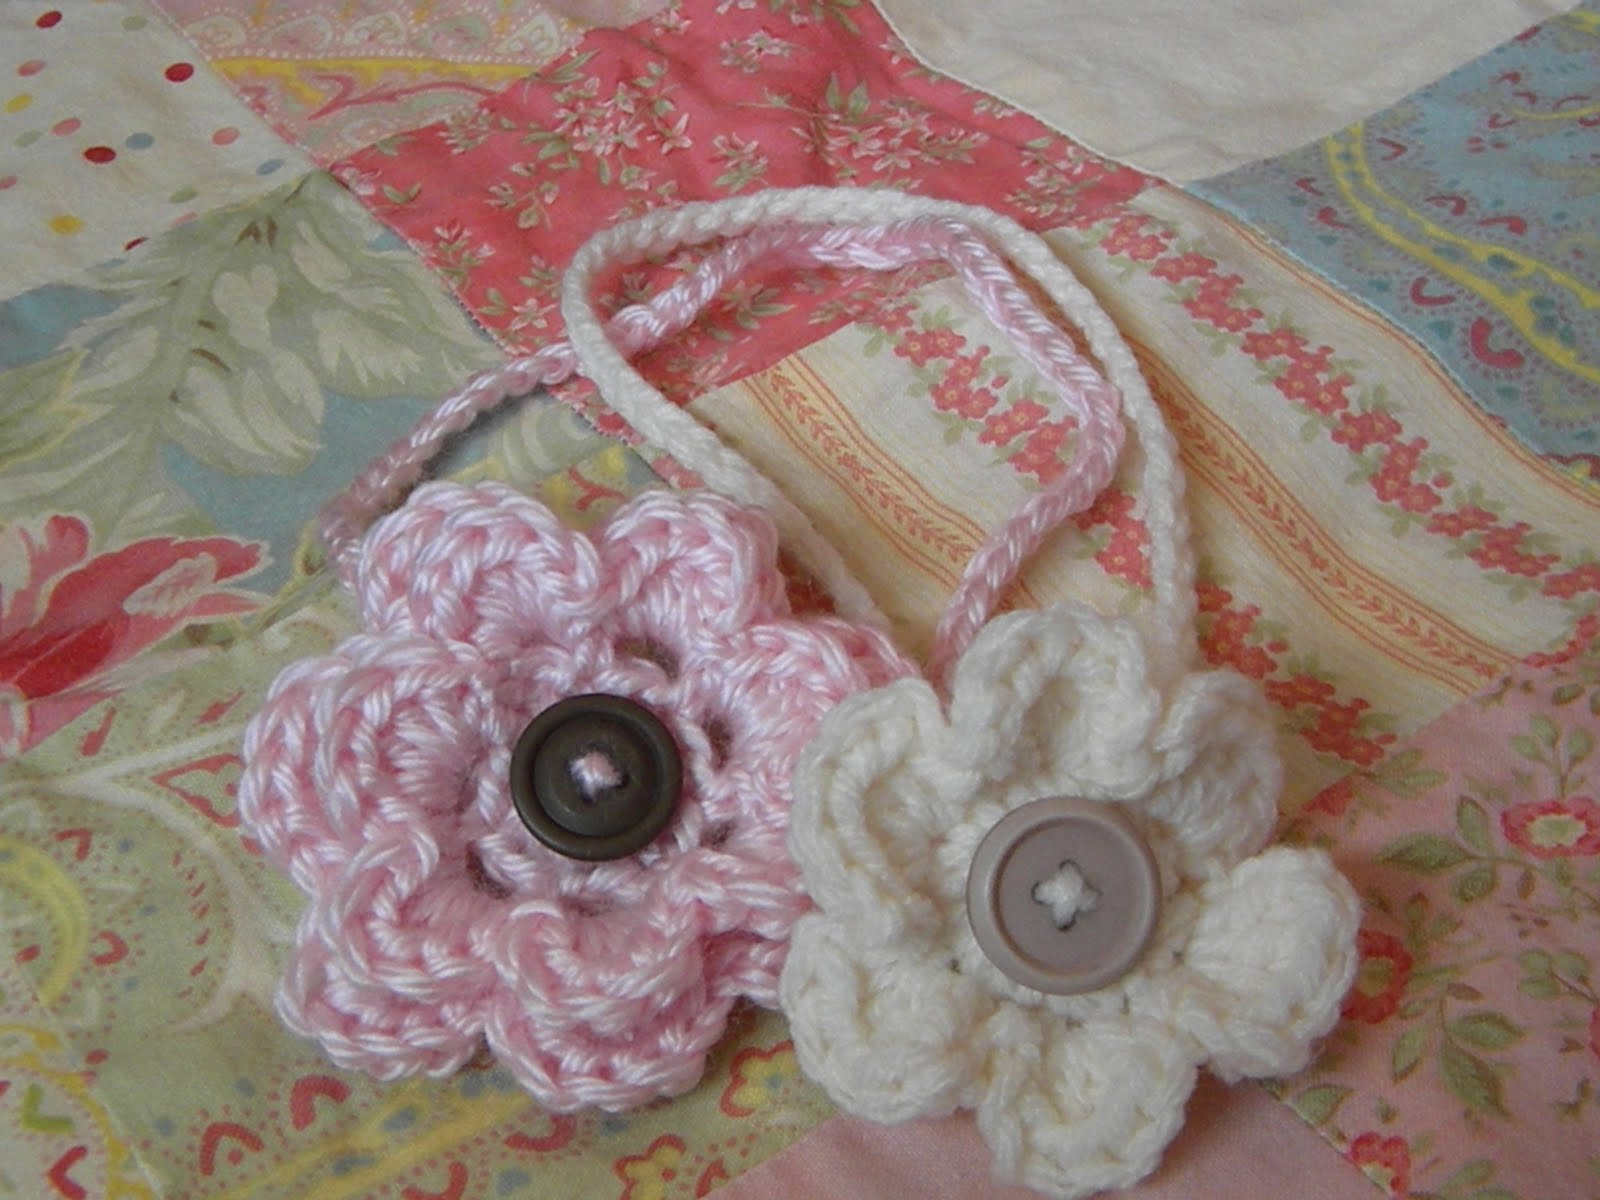 Crochet Pattern For A Flower Headband : Knotty Knotty Crochet: Little Lizzys Headband FREE PATTERN